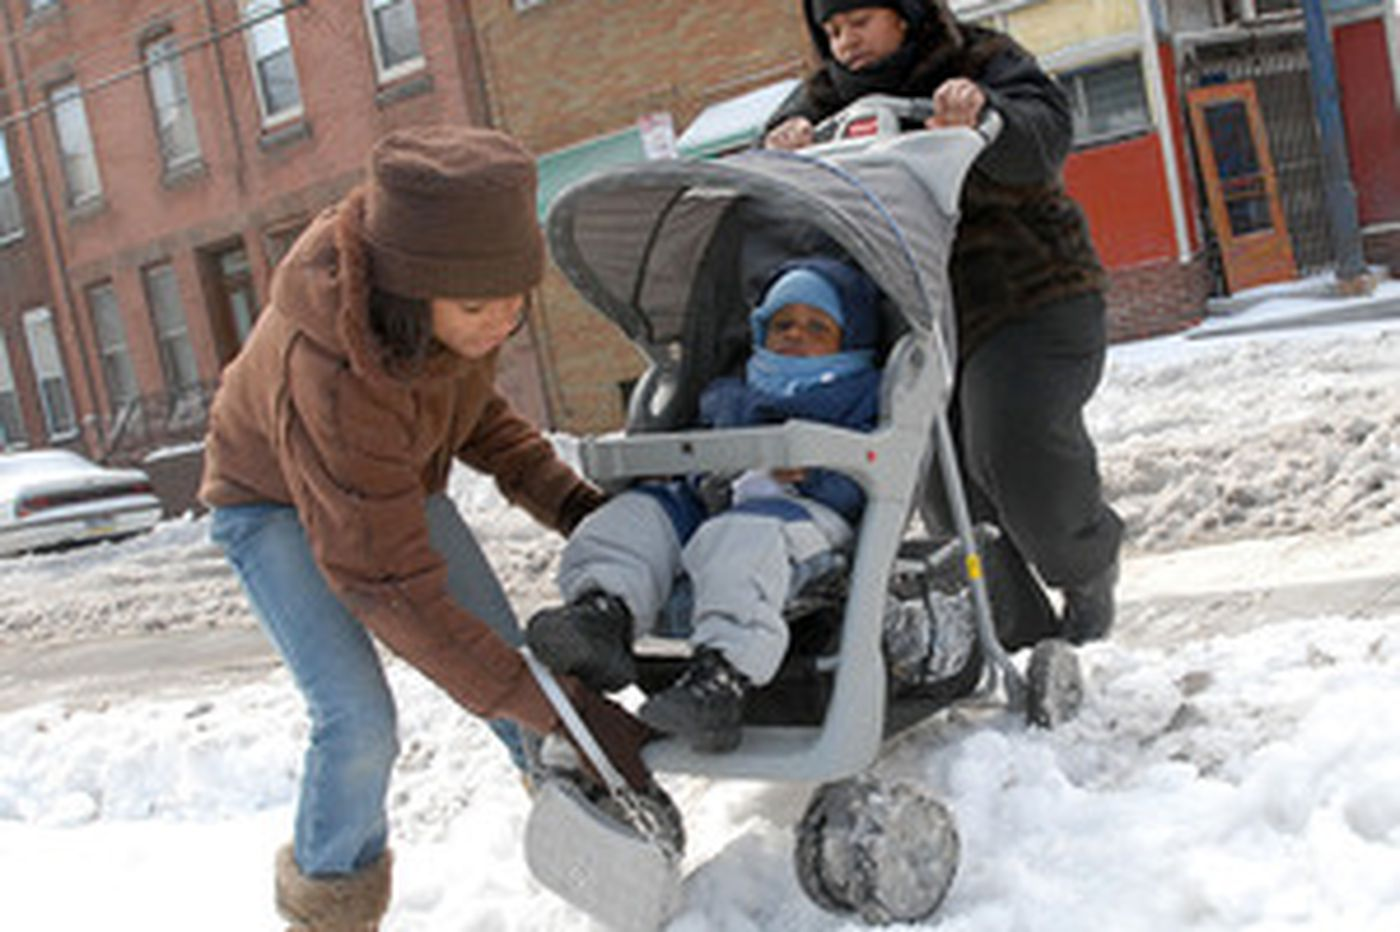 While plows waited, frustration piled up